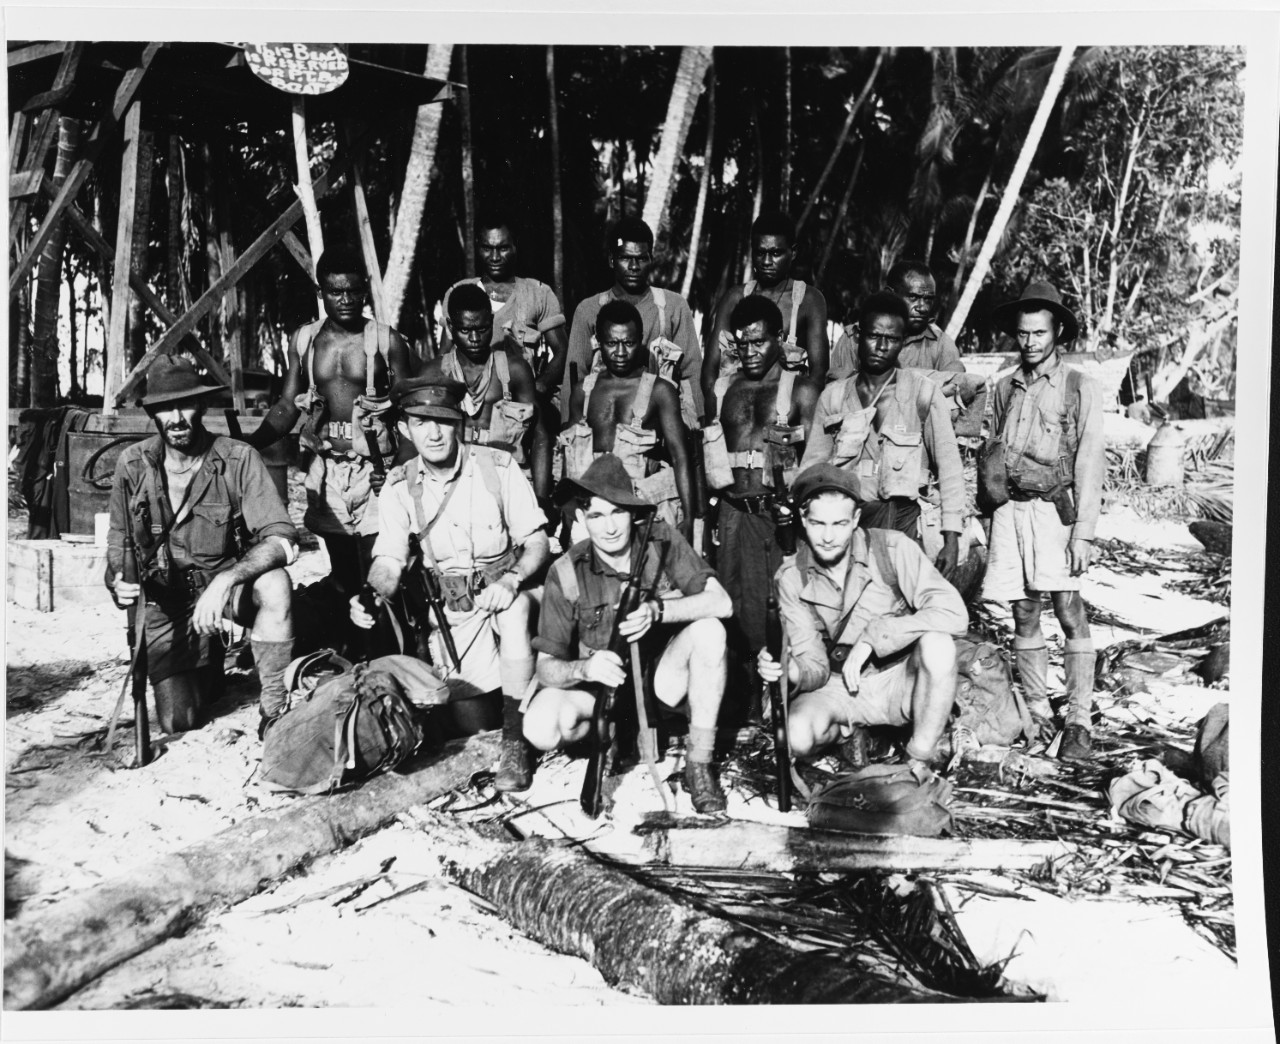 Australian Coast Watchers on Bougainville, November 29, 1943